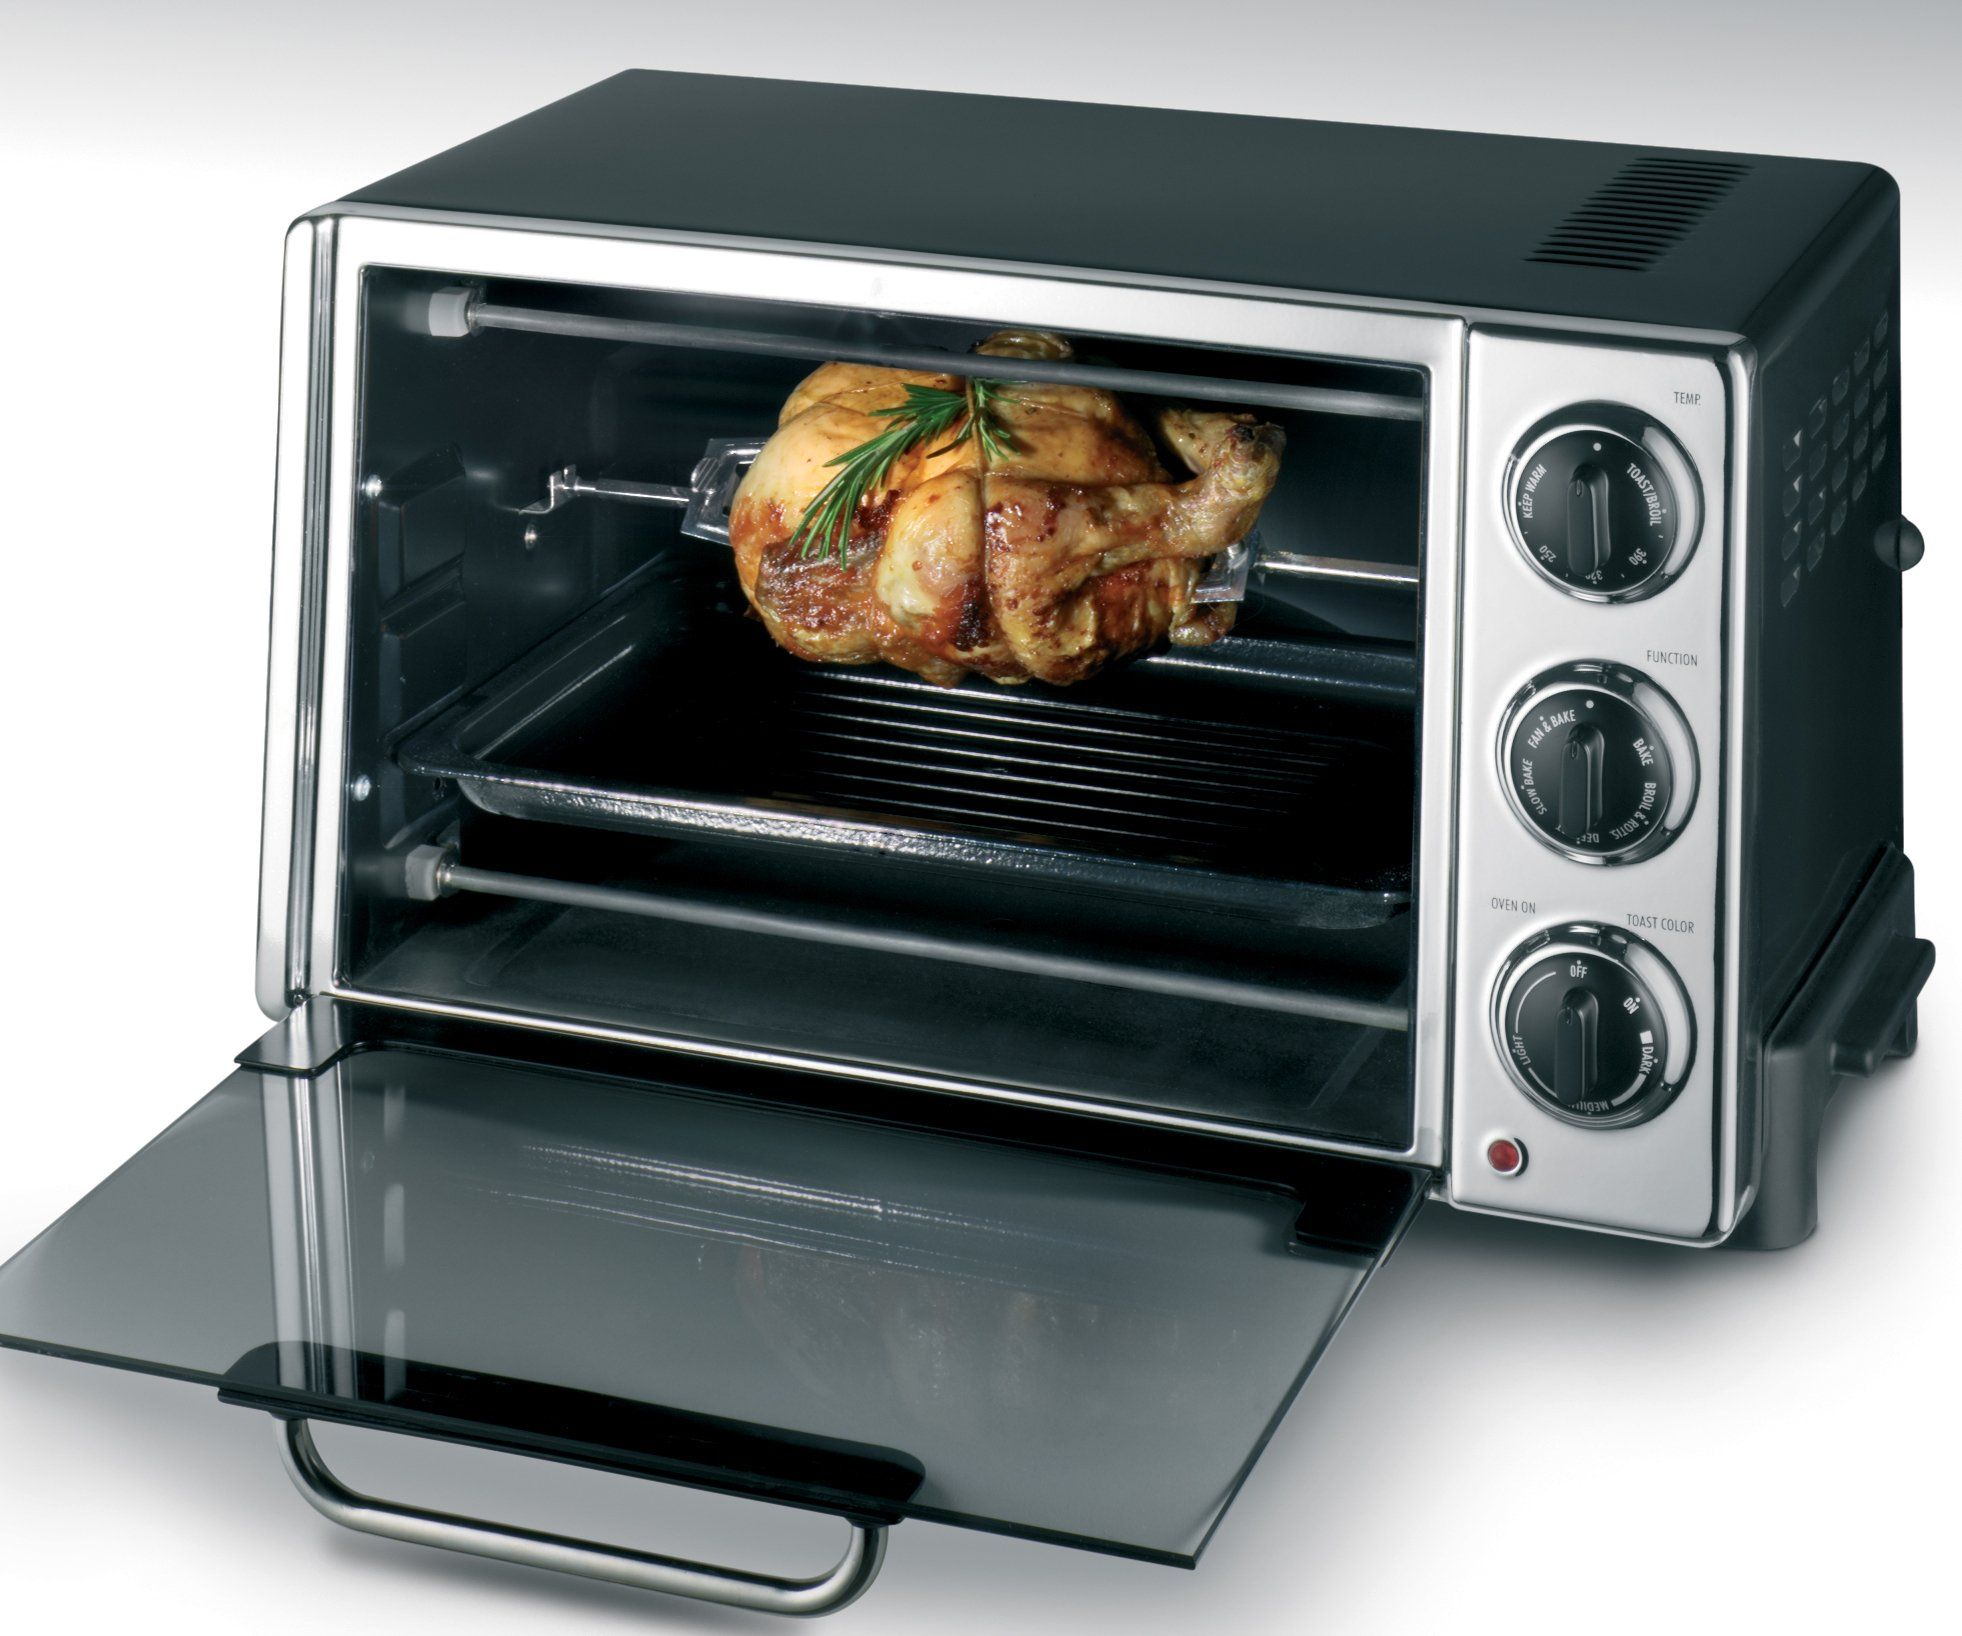 Robot Check Convection Toaster Oven Toaster Oven Oven